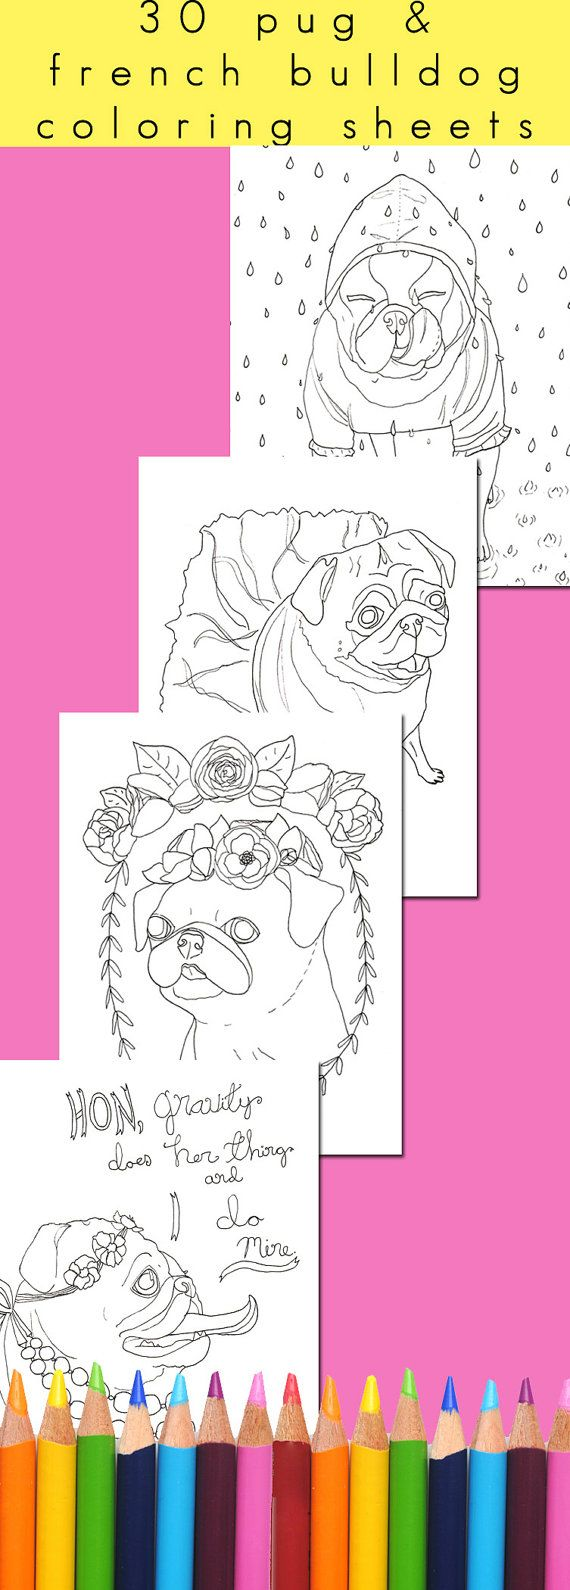 Pug French Bulldog Adult Coloring Book For Adults Dog Lover Gift Page Kids Sheet